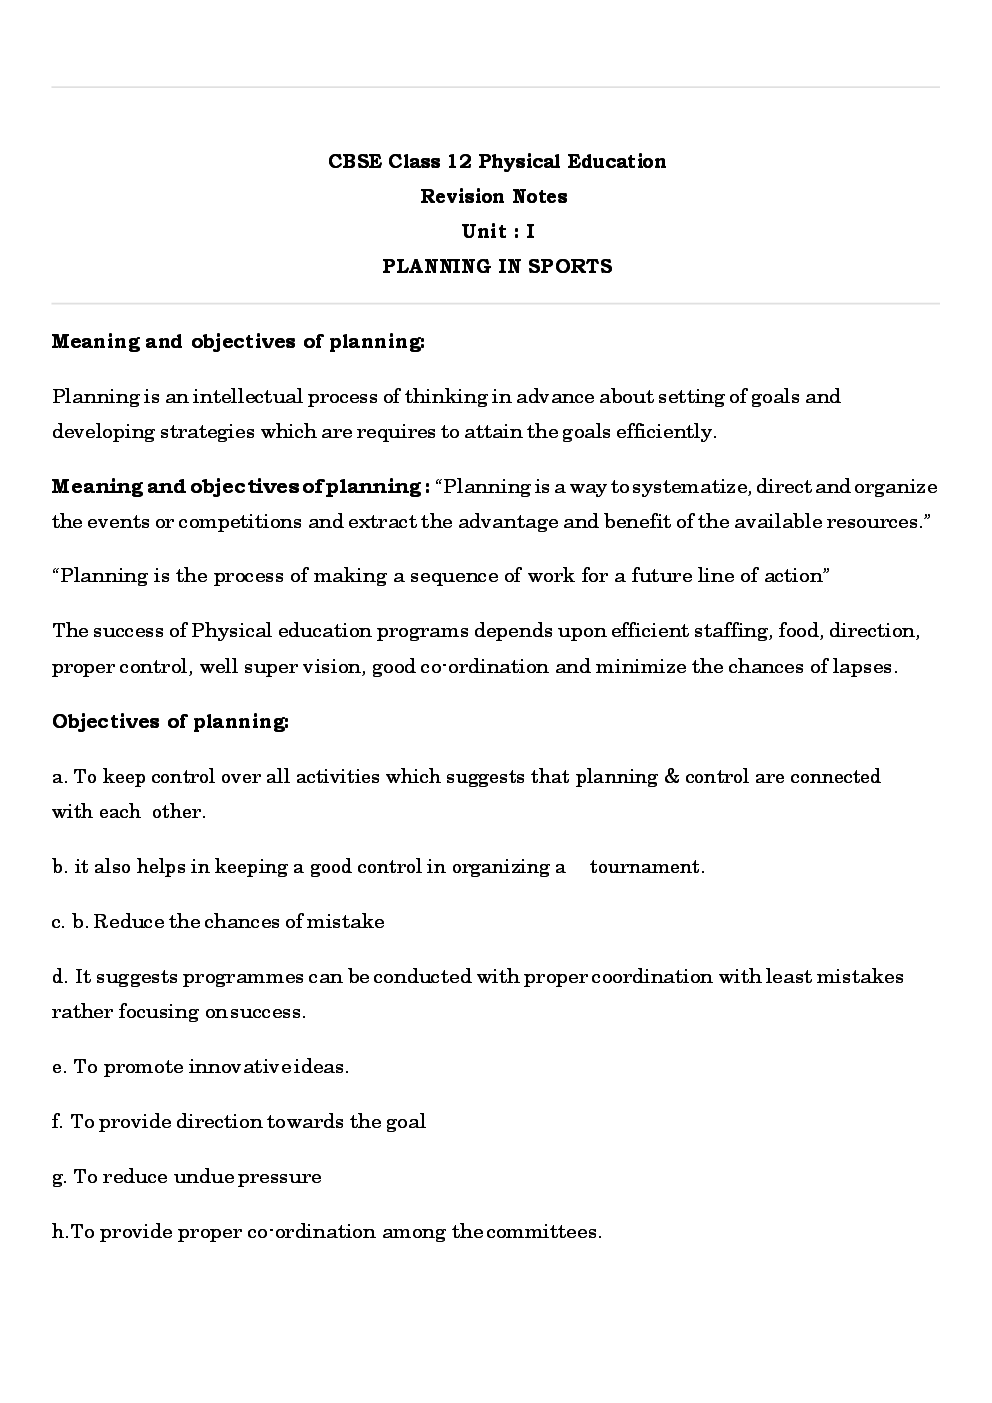 CBSE Class 12 Physical Education Revision Notes  Planning In Sports - Page 2